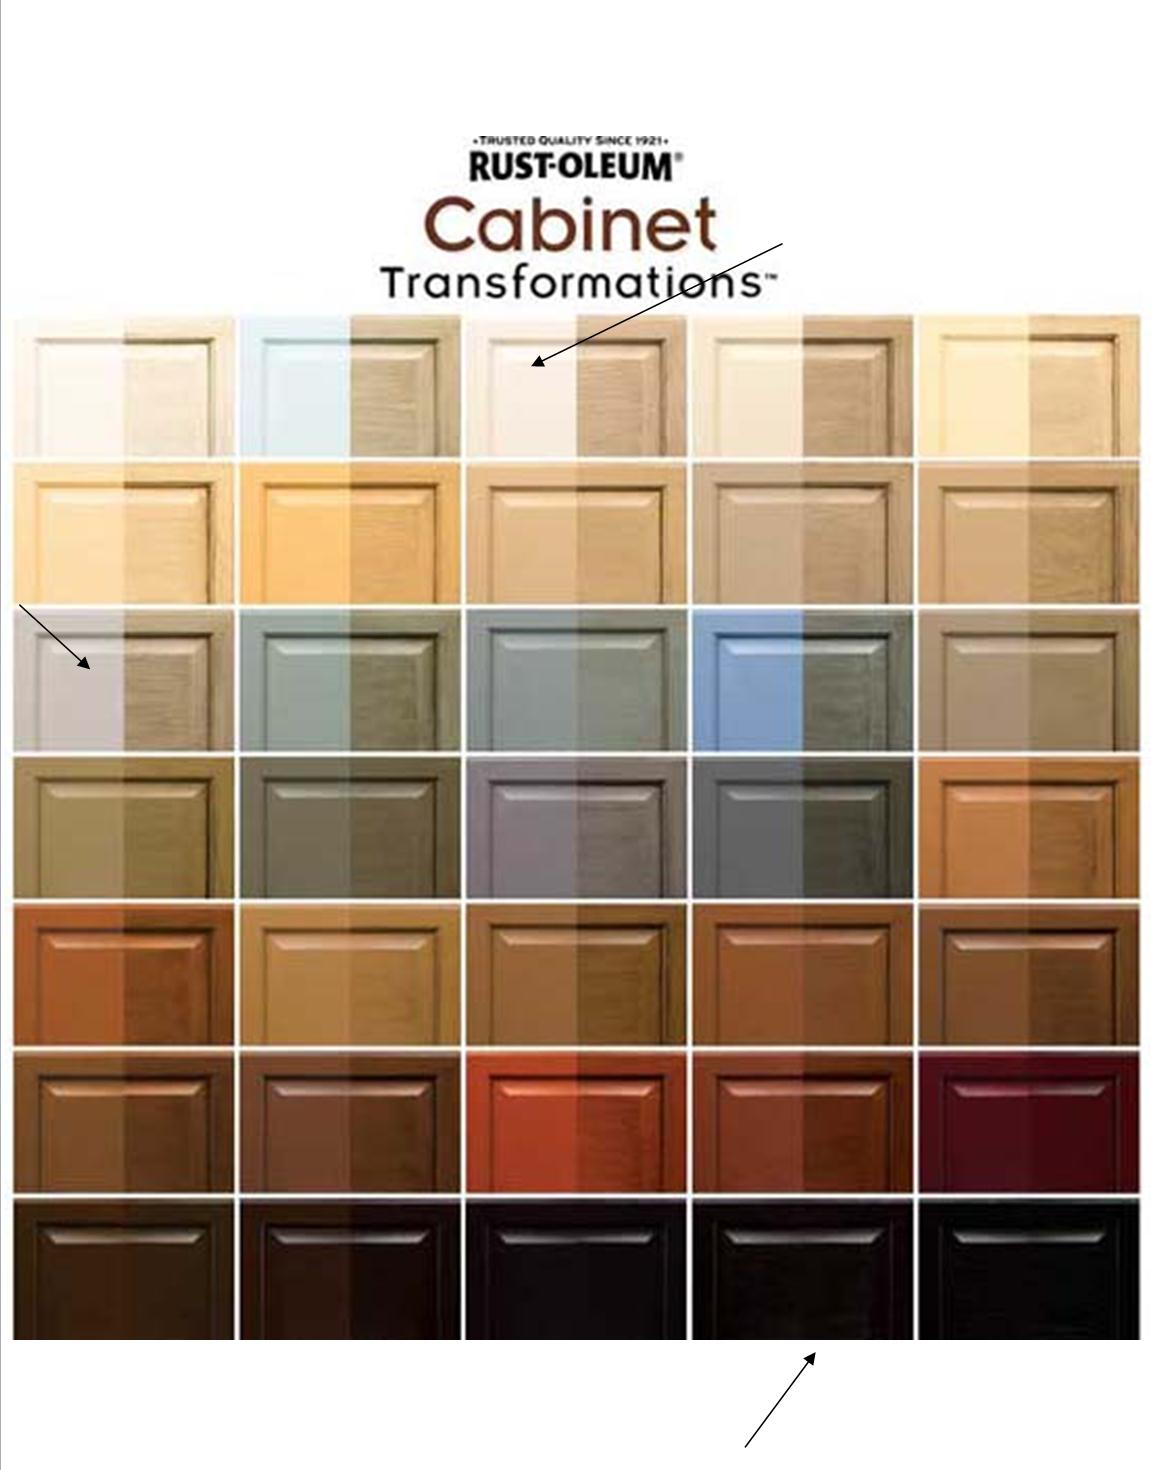 rustoleum paint color chartFull of Great Ideas OMG Have you seen the new Rustoleum Cabinet